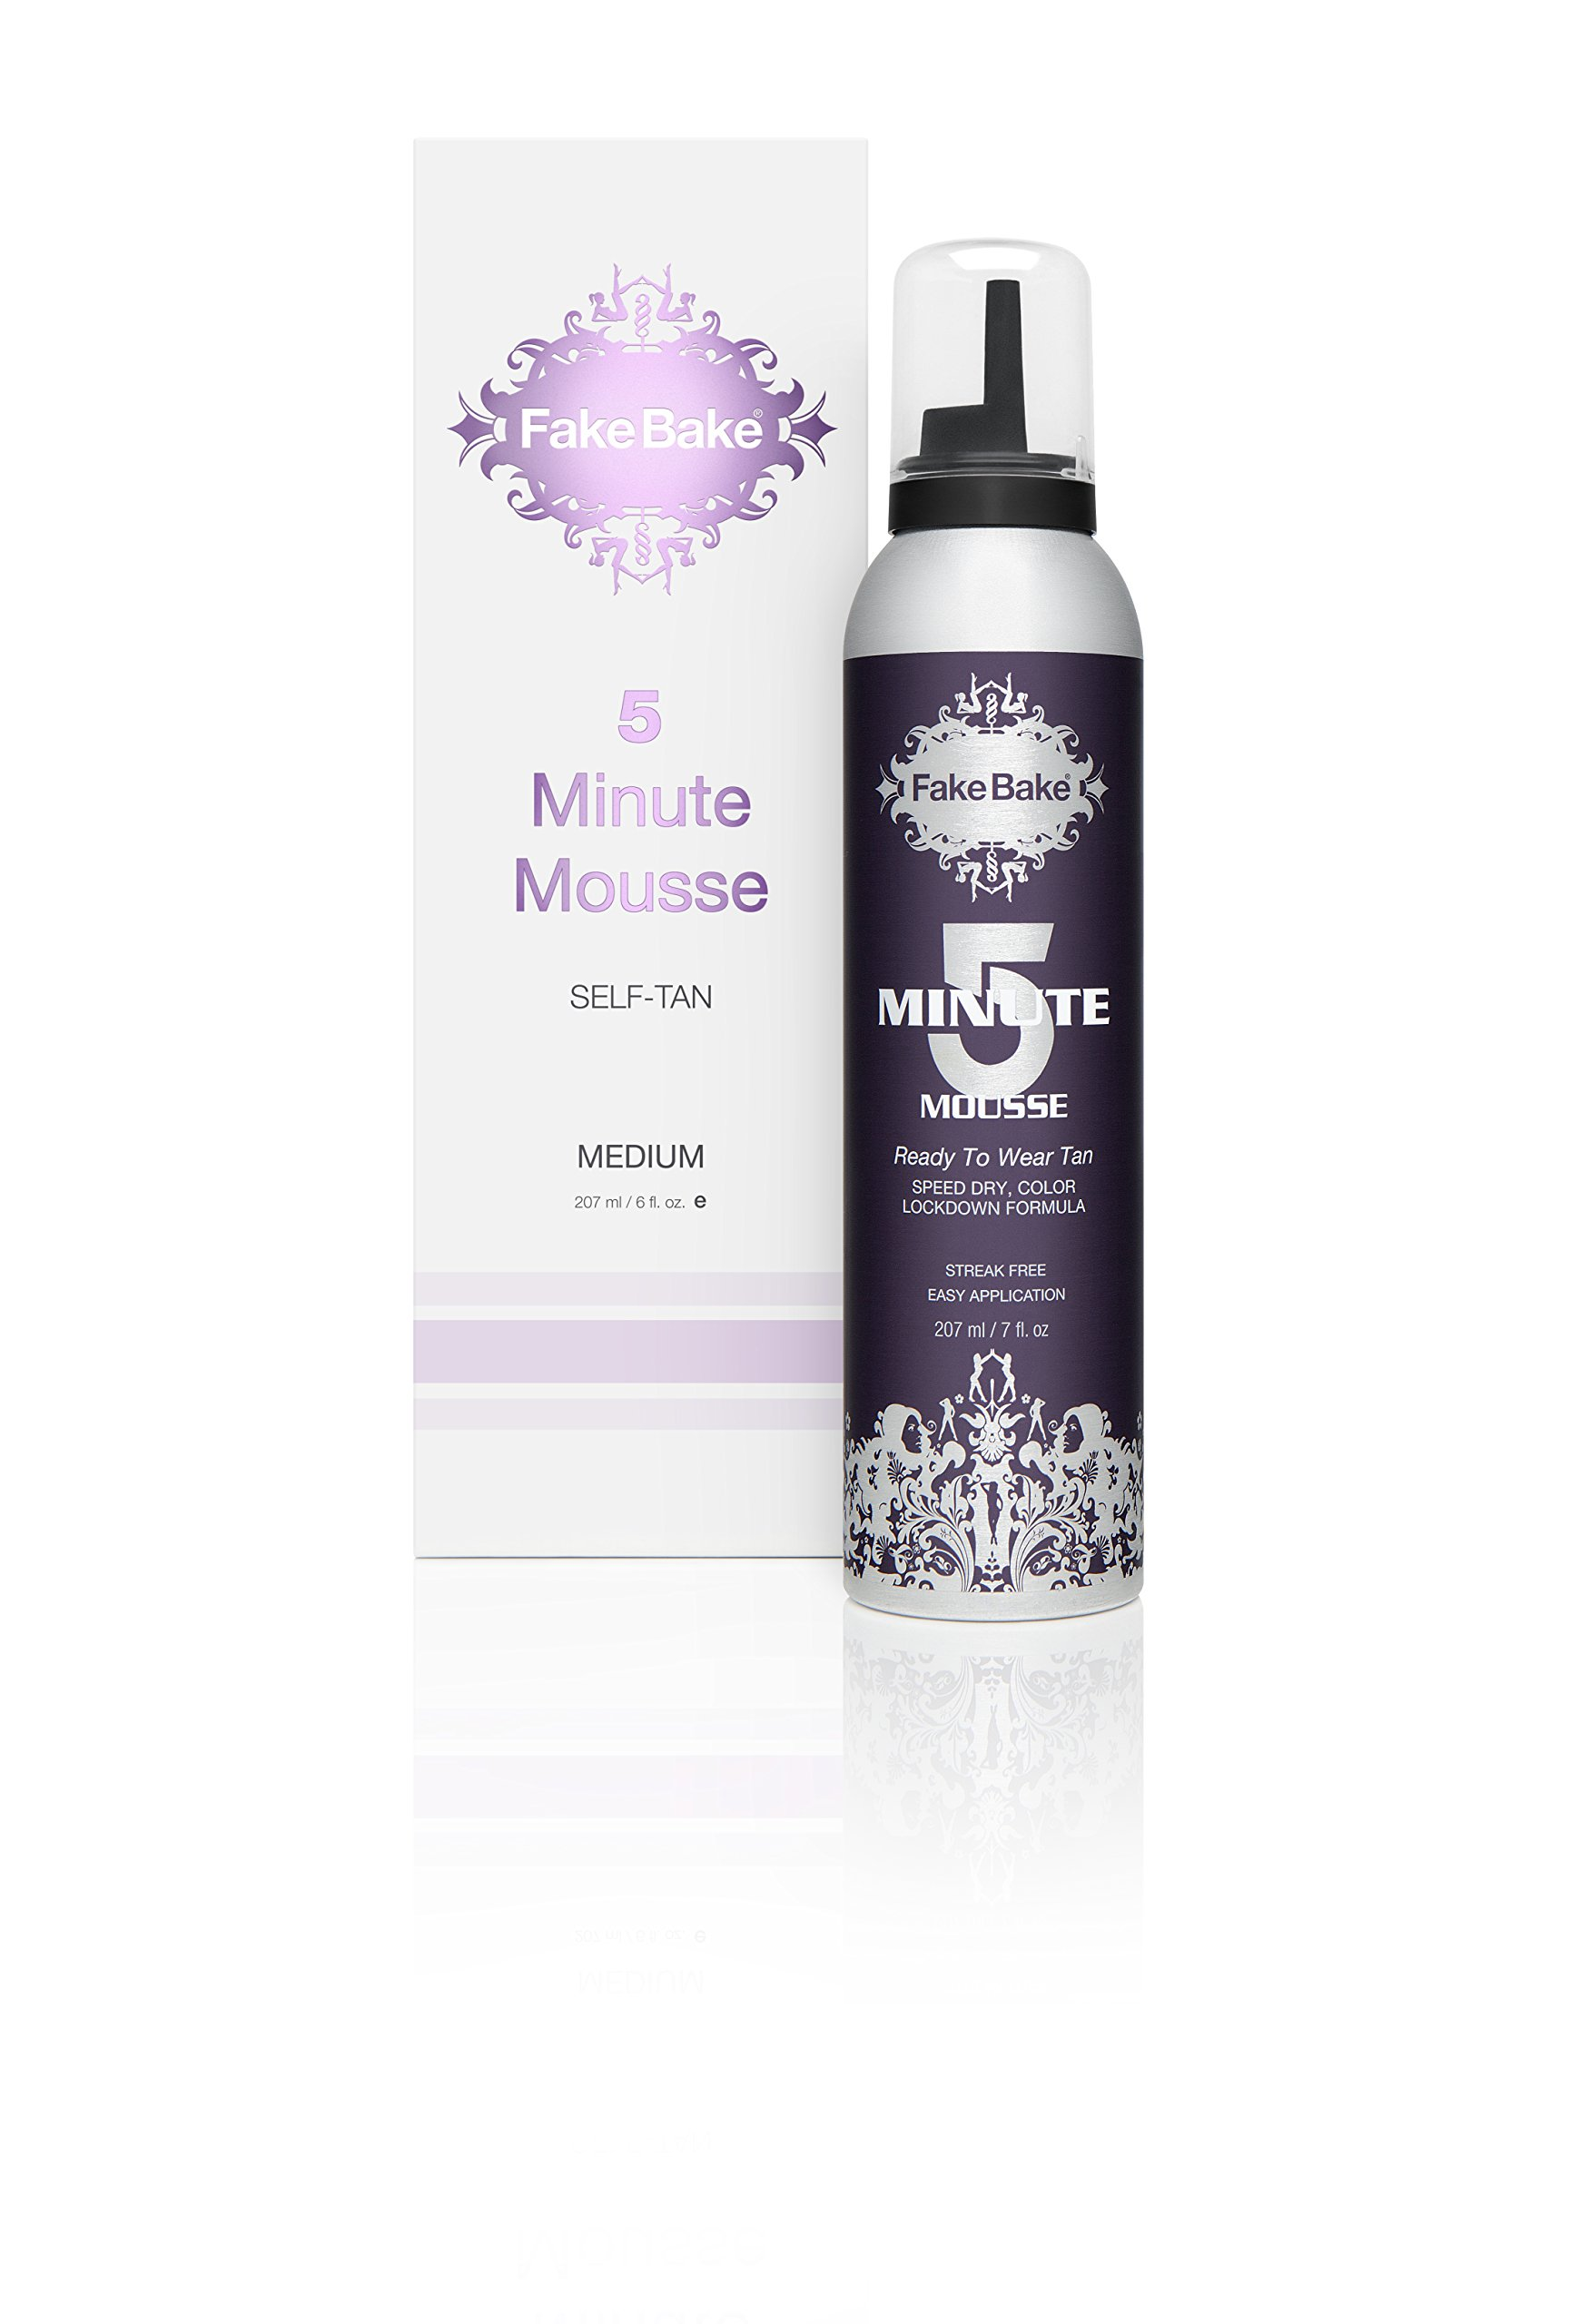 Fake Bake 5 Minute Mousse Ready To Wear Tan, 7 Ounce